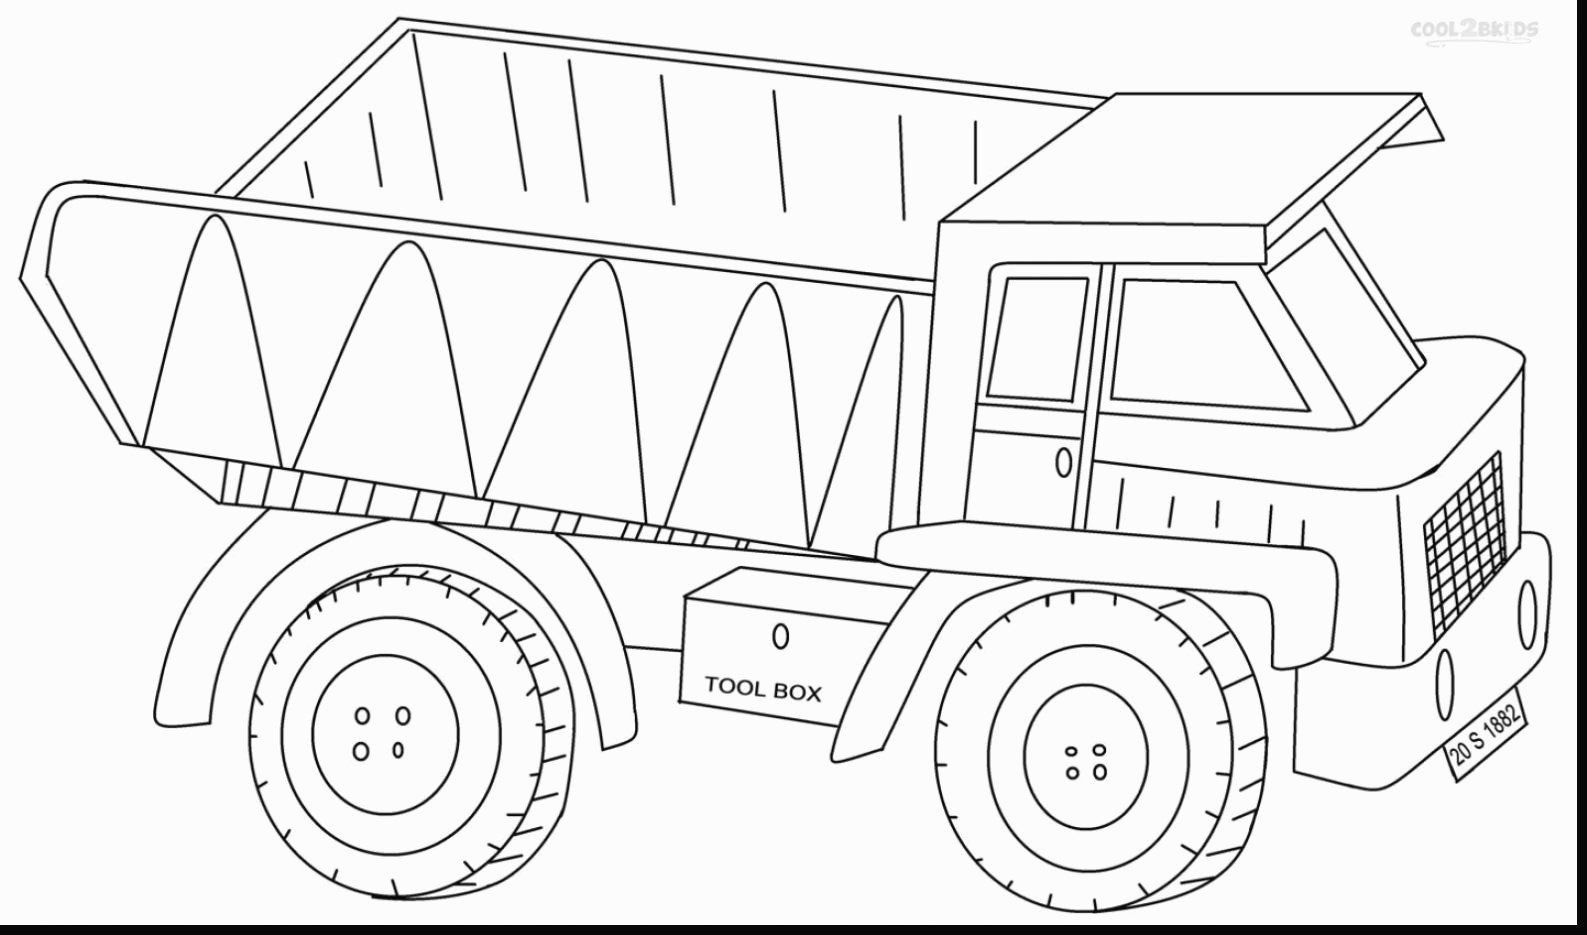 Garbage Truck Coloring Page Elegant 22 Better Truck Flag Stock With Images Truck Coloring Pages Monster Truck Coloring Pages Coloring Pages For Kids